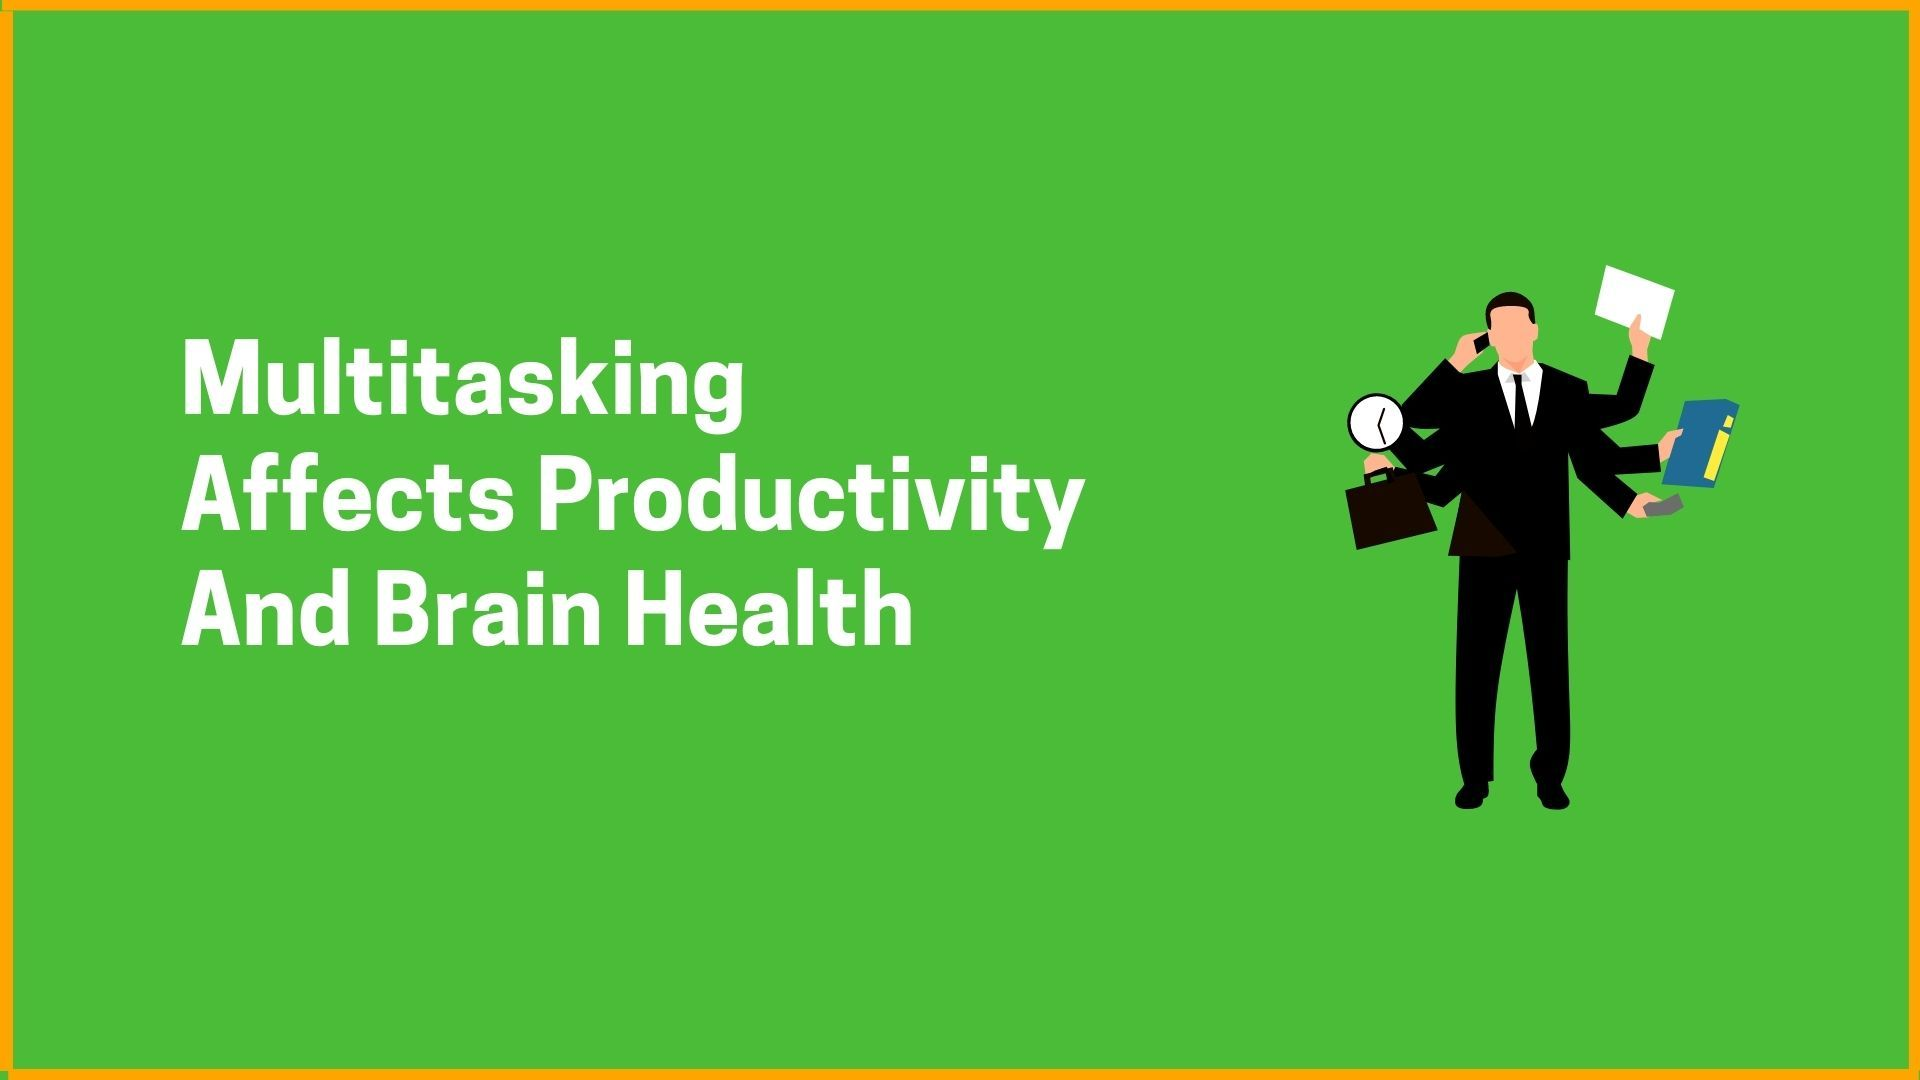 Multitasking Affects Productivity and Brain Health